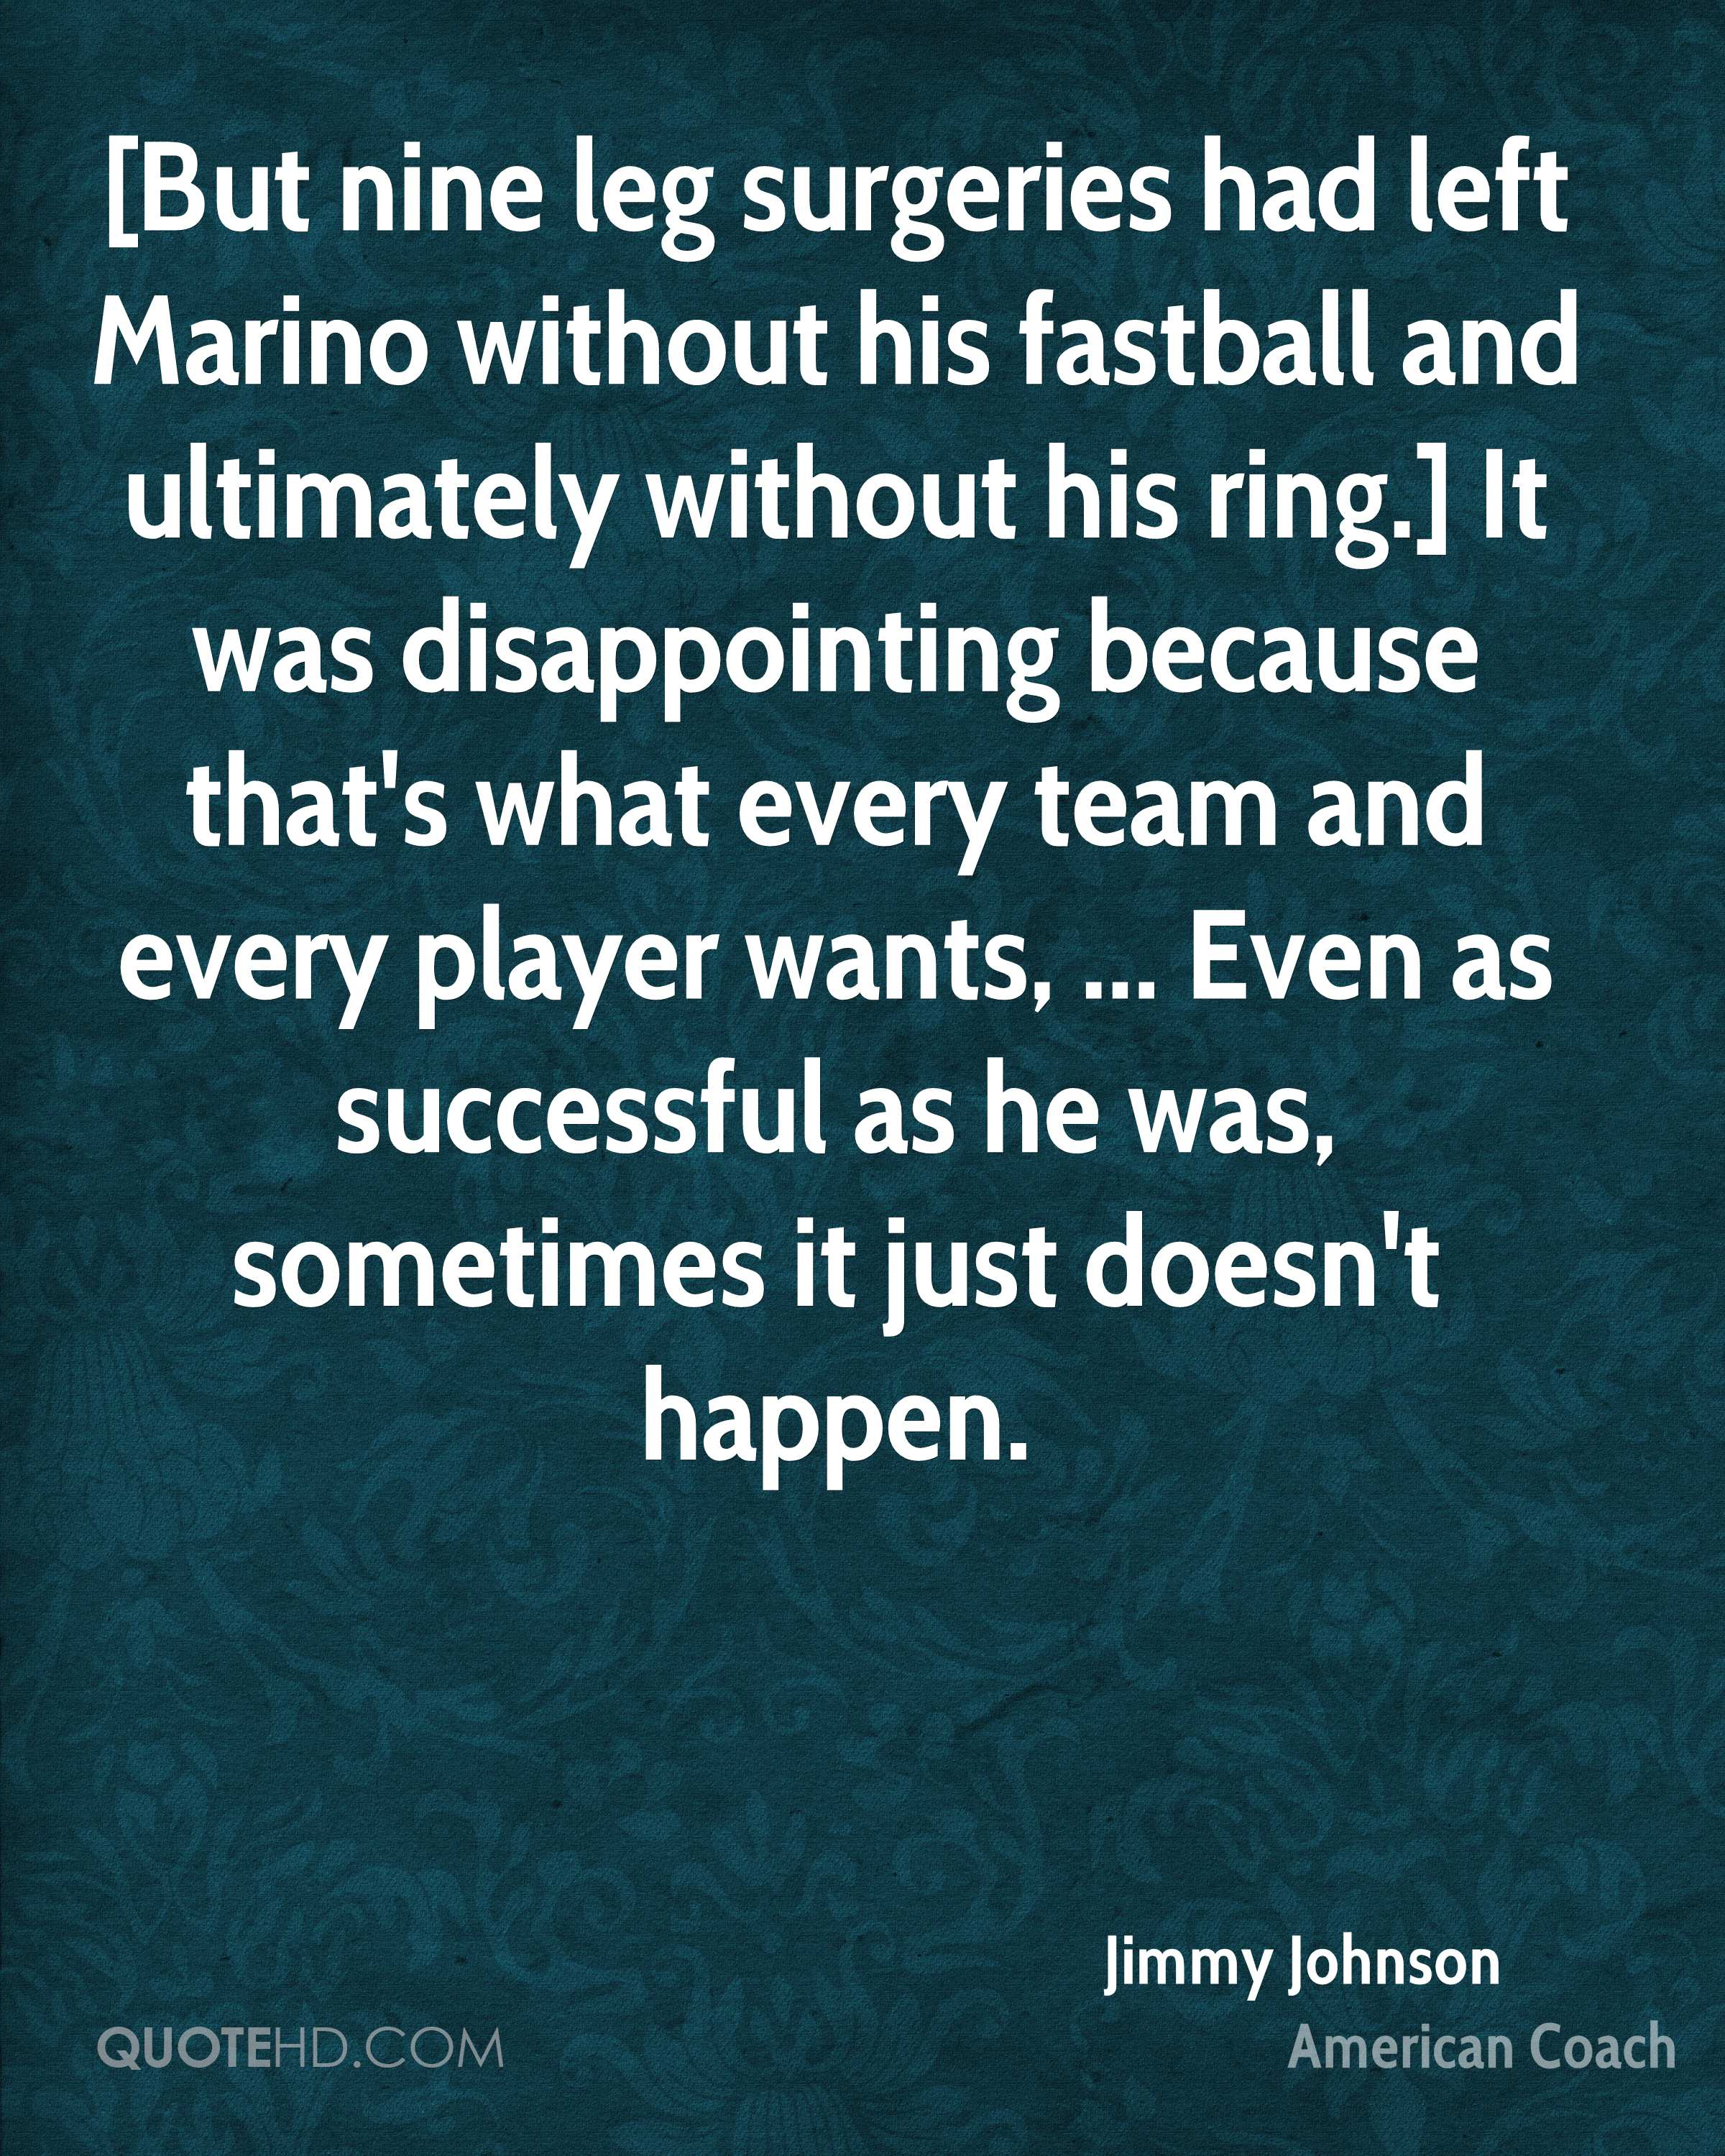 [But nine leg surgeries had left Marino without his fastball and ultimately without his ring.] It was disappointing because that's what every team and every player wants, ... Even as successful as he was, sometimes it just doesn't happen.